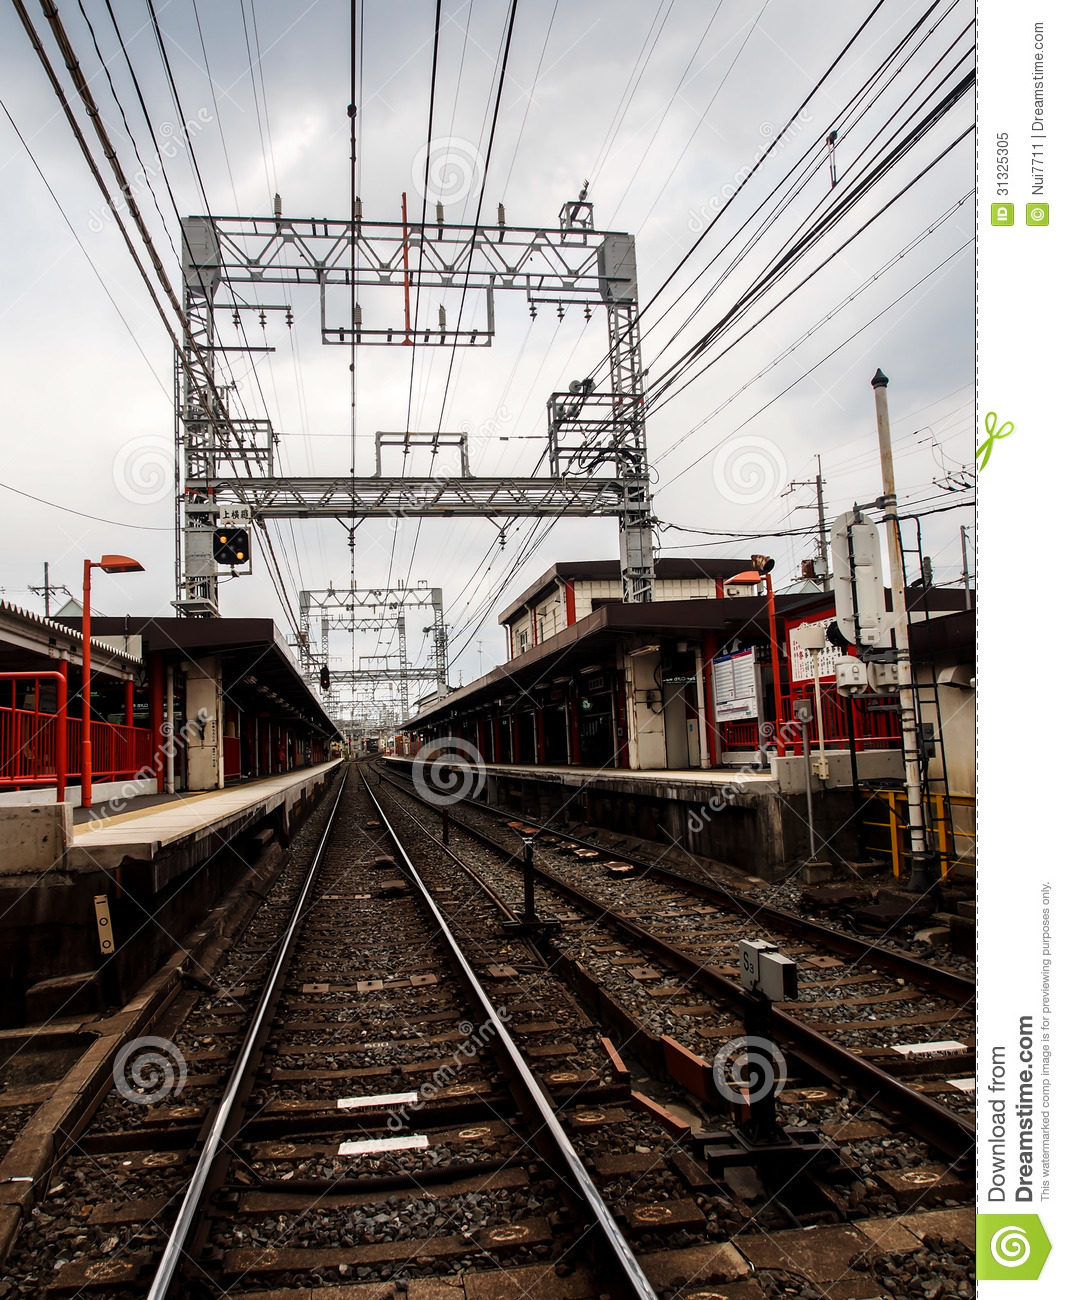 Perspective Of Local Railroad In Japan Royalty Free Stock